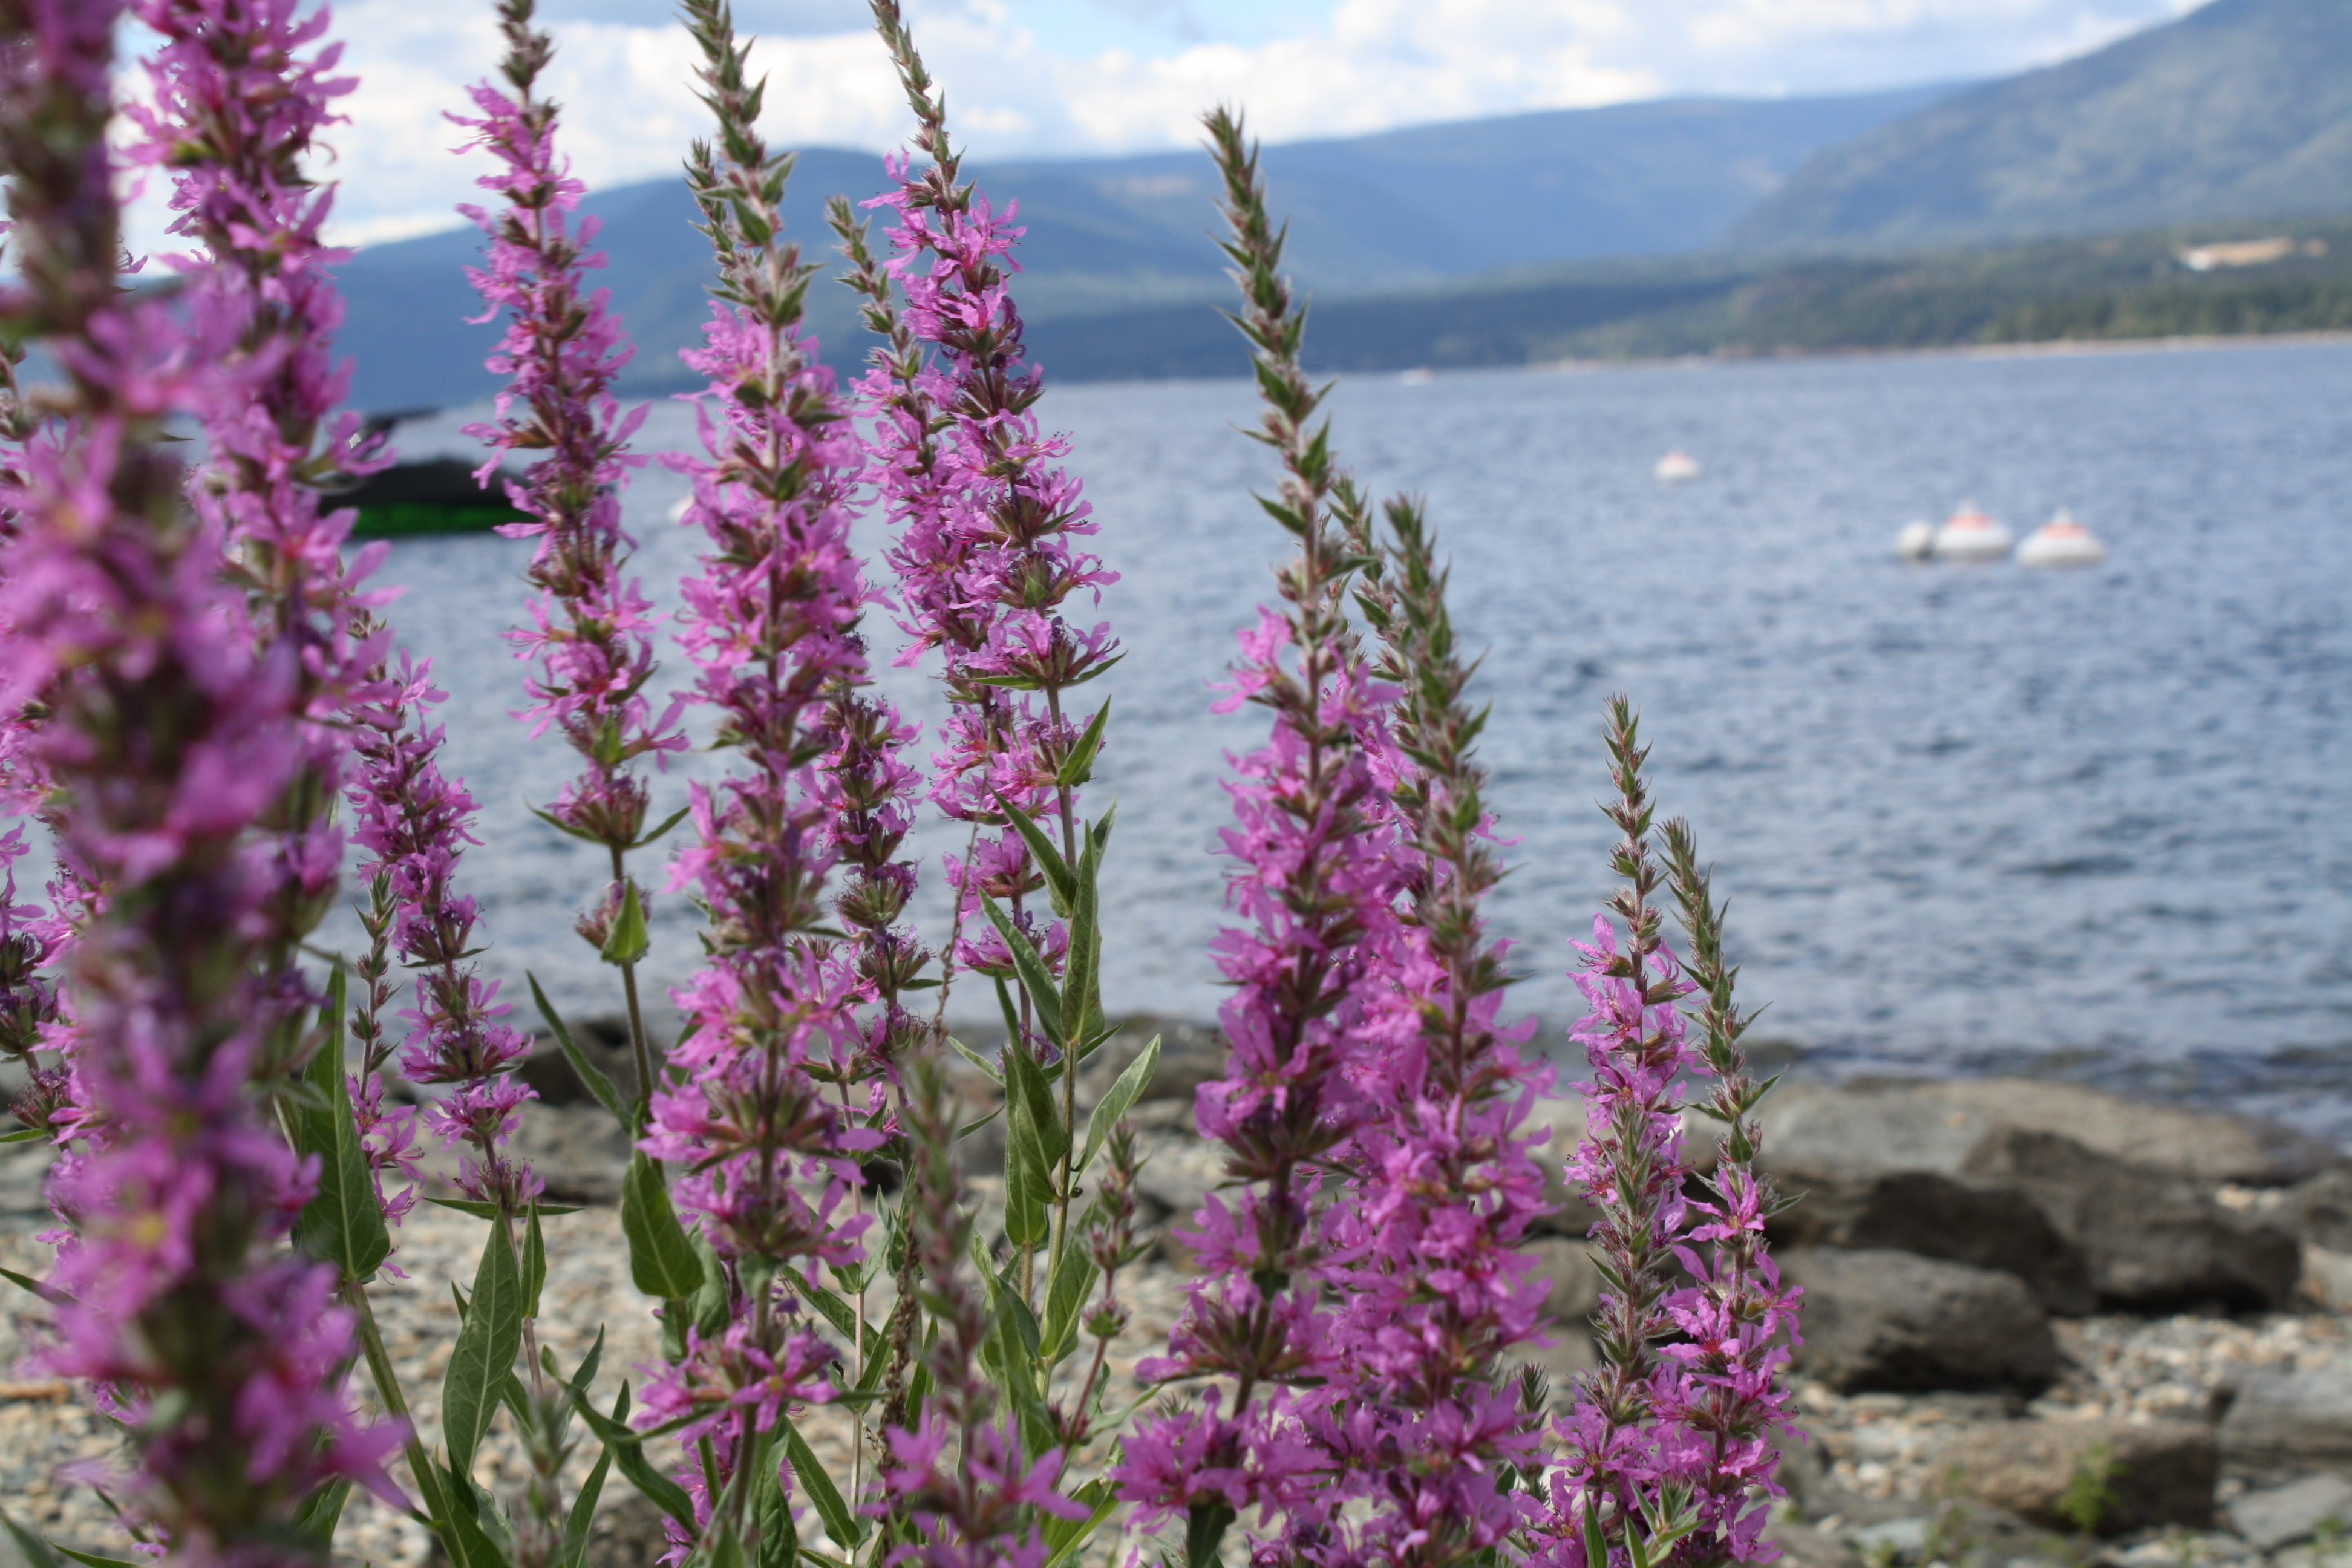 Columbia Shuswap Invasive Species Society